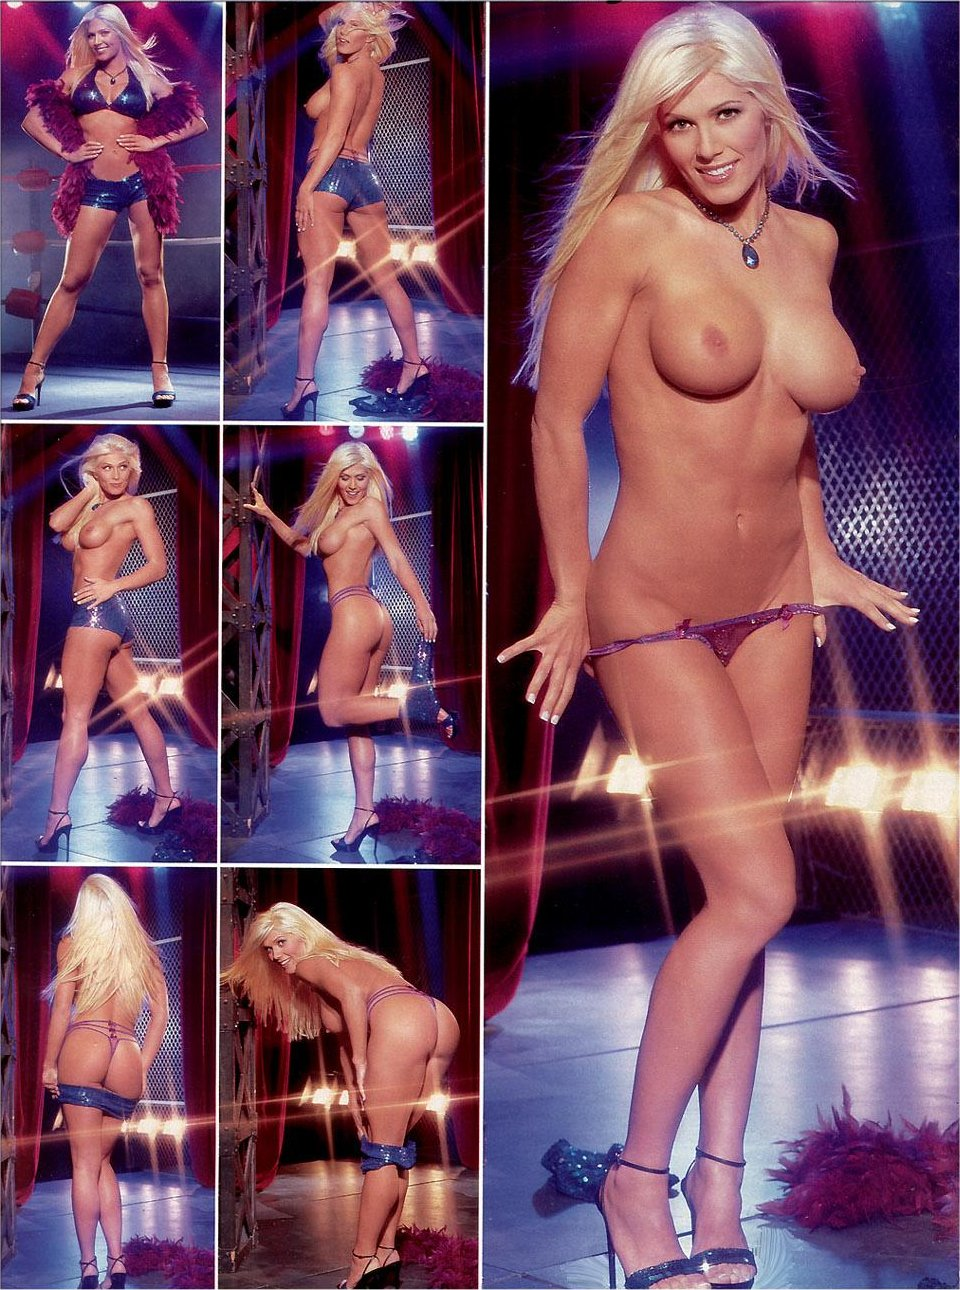 Torrie wilson nude playboy photos